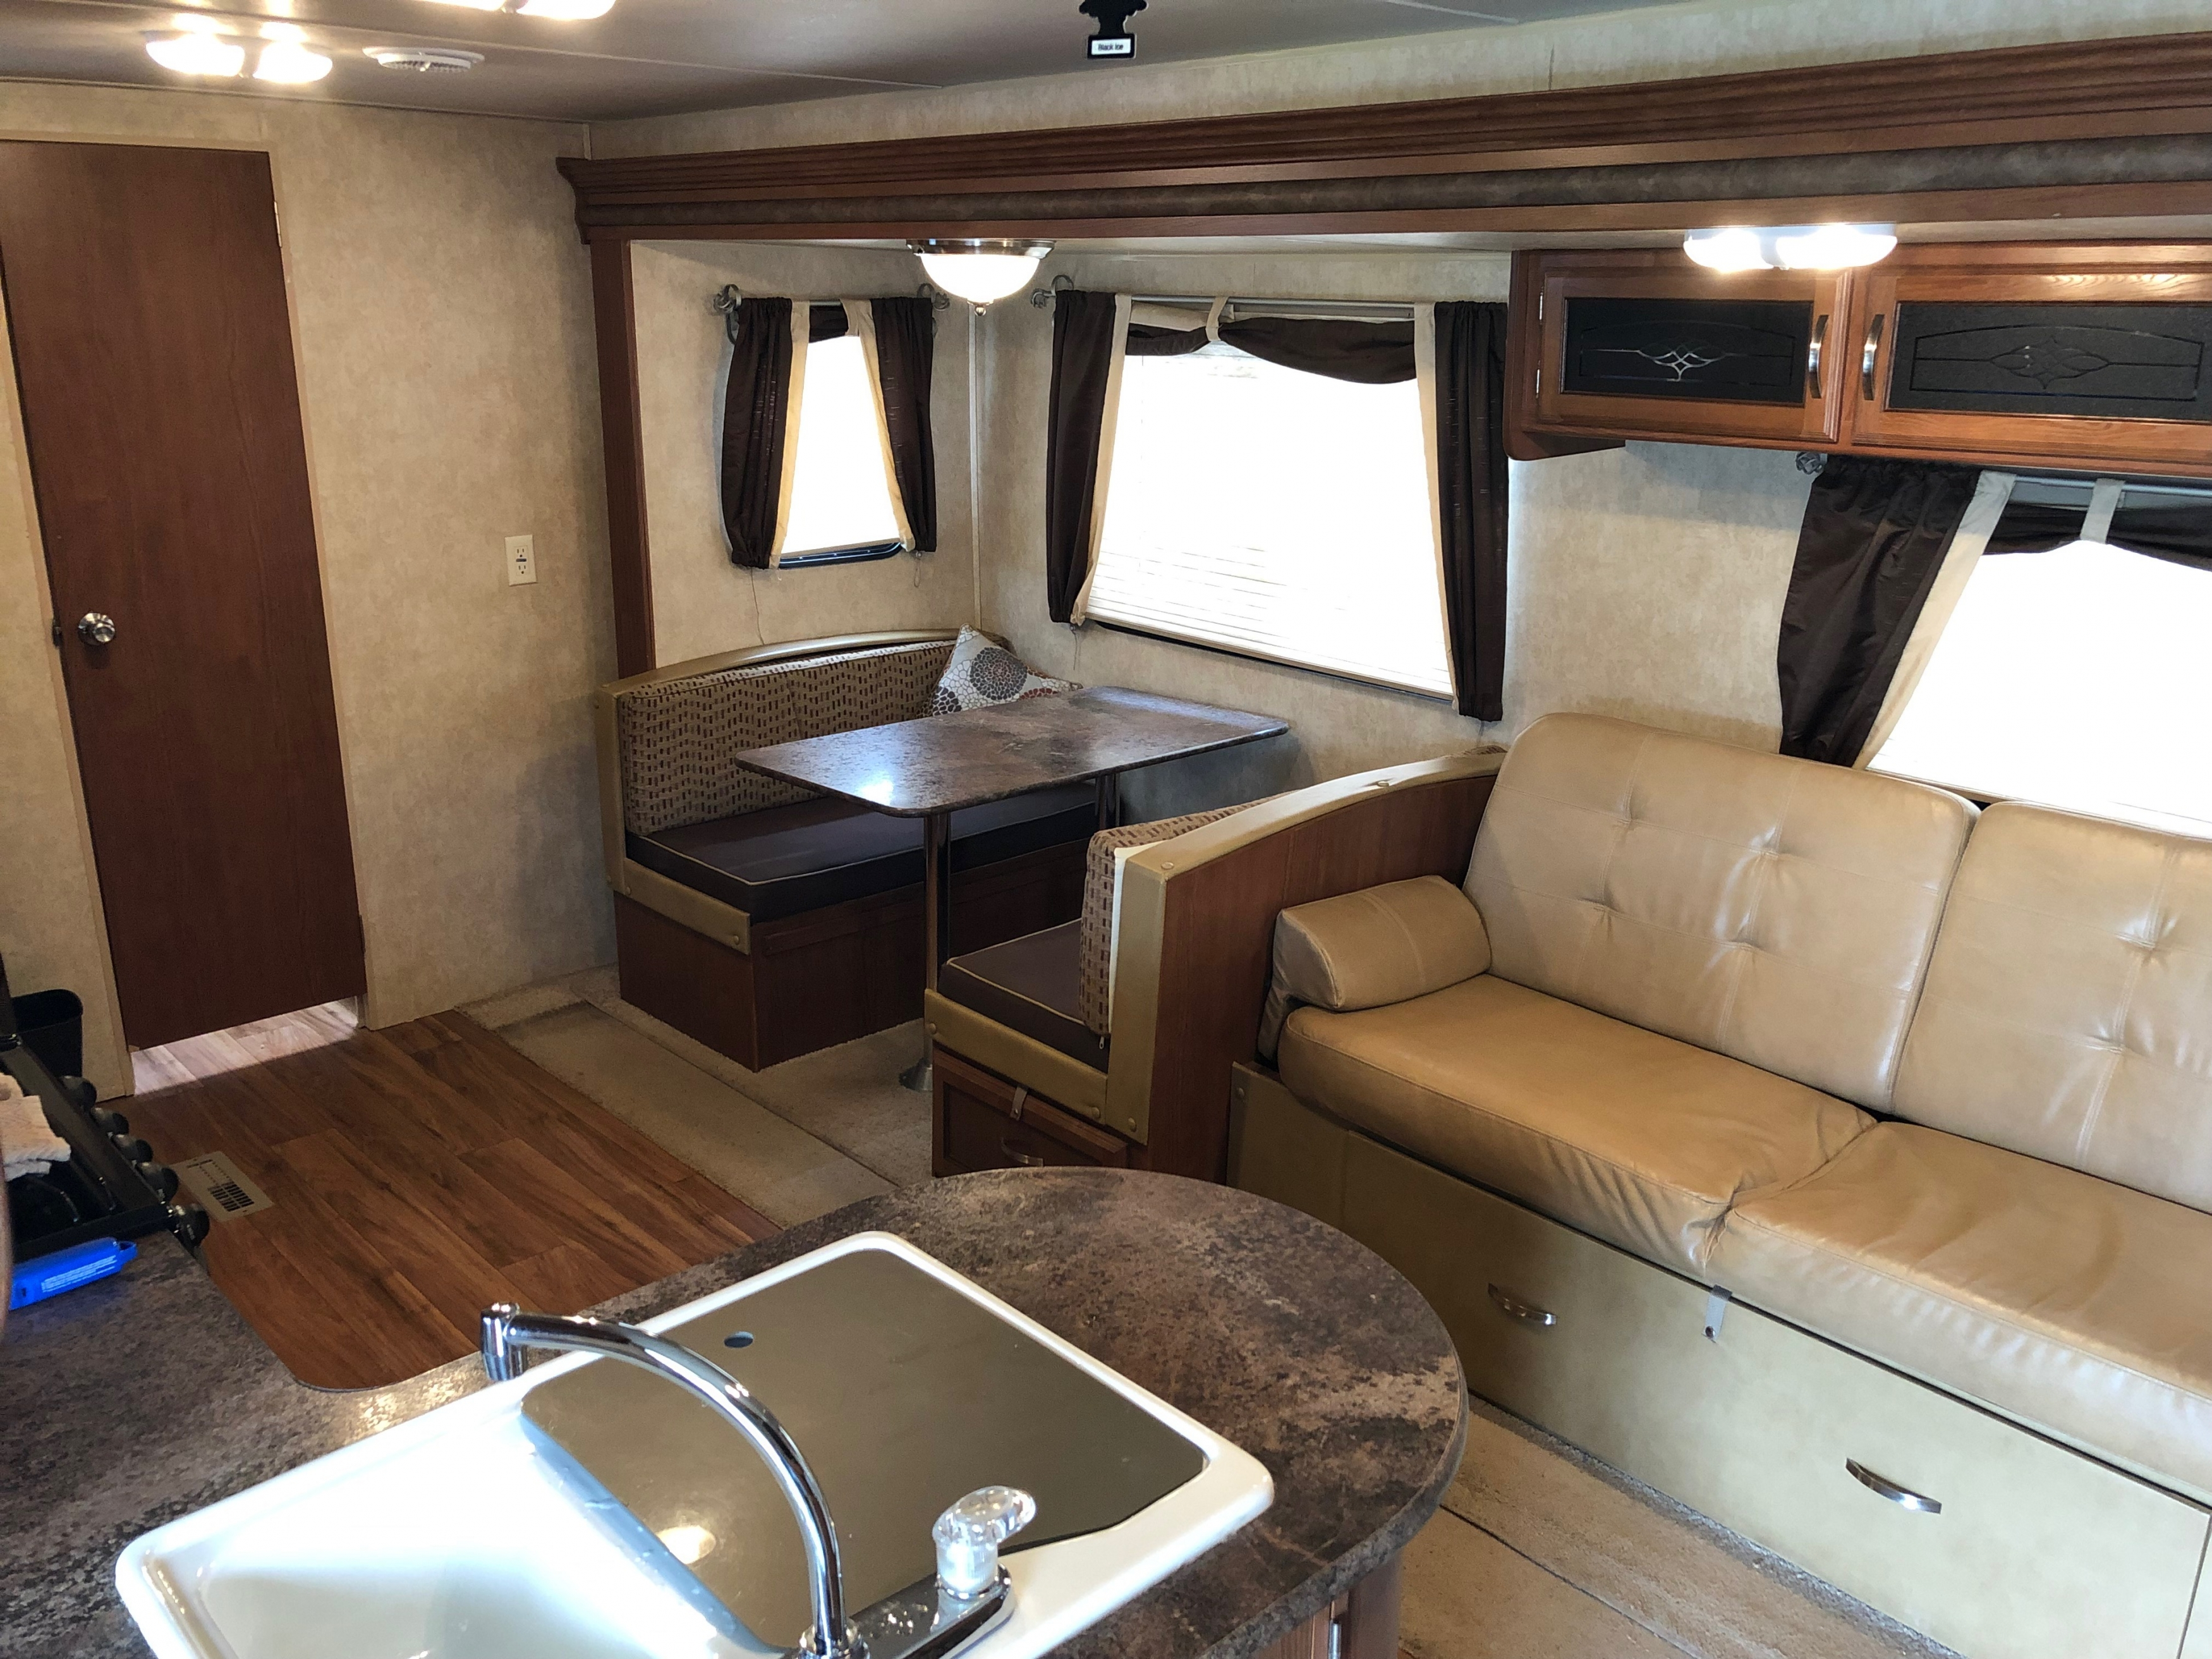 27' Wildwood Trailer with Slide Out Living Room, Kitchen, & Dinette View